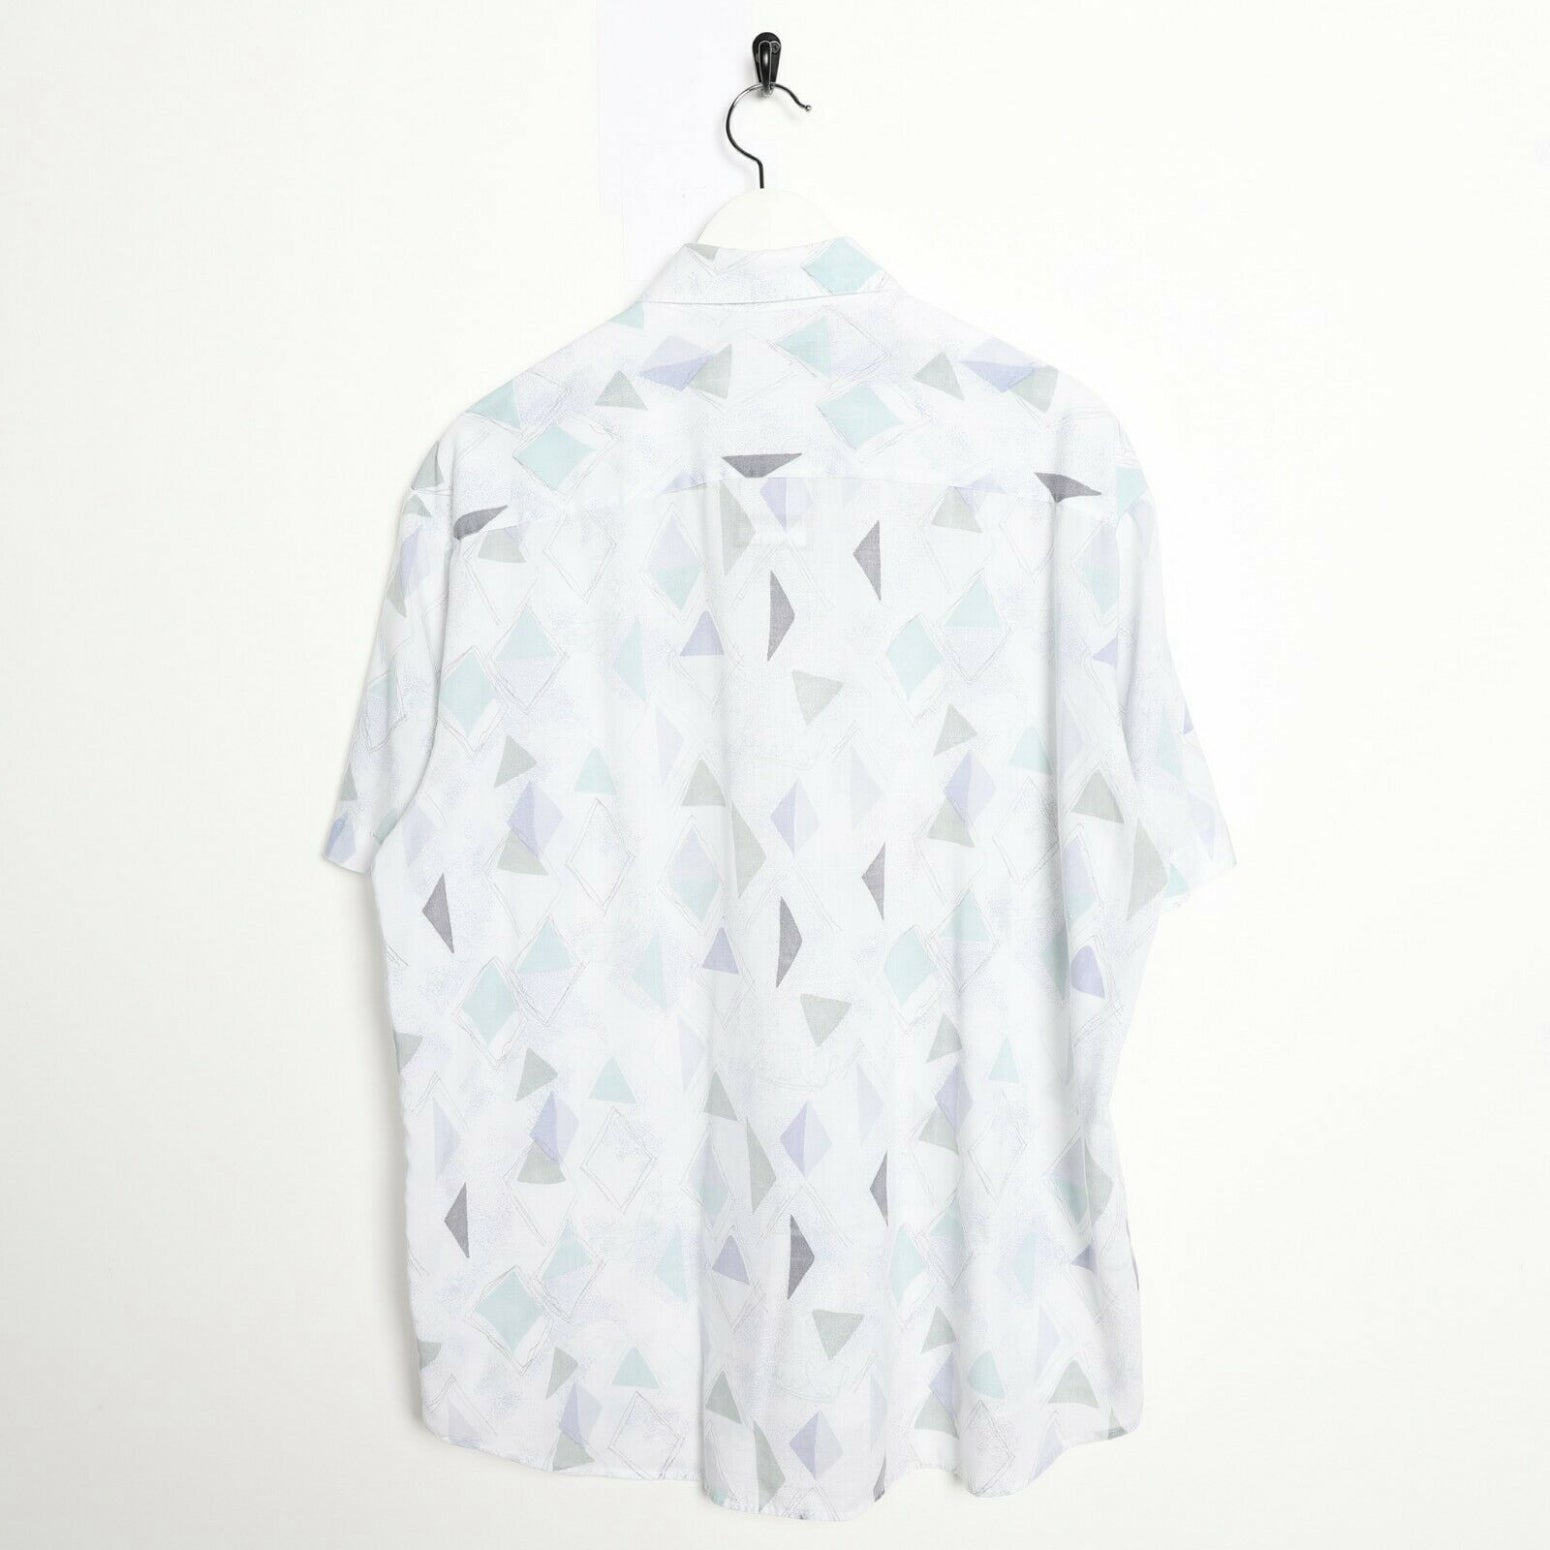 Vintage 90s ABSTRACT Short Sleeve Festival Party Shirt White Large L